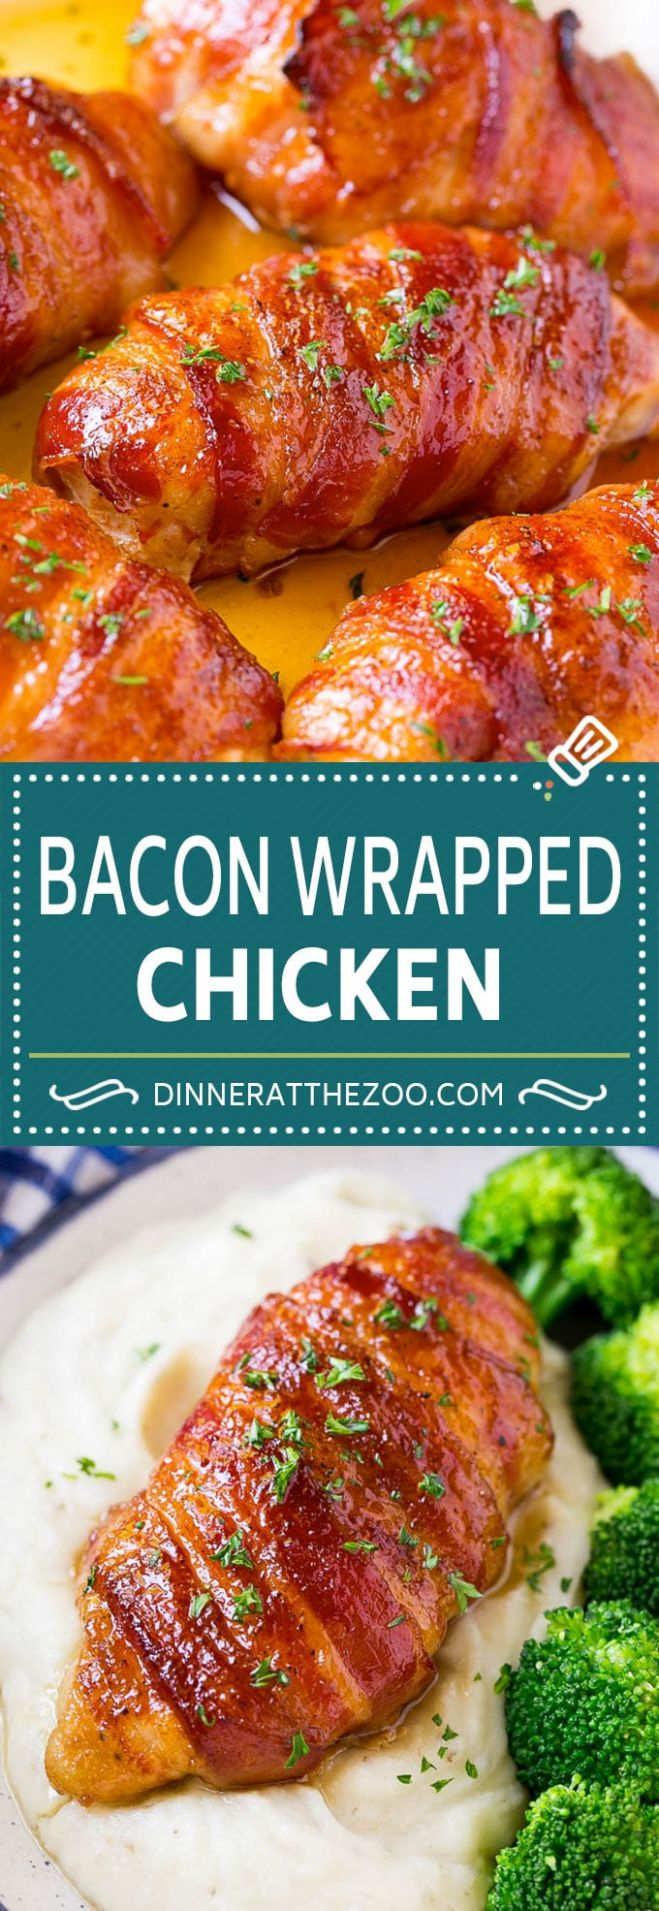 Bacon Wrapped Chicken - Dinner at the Zoo - Recipes Chicken Breast And Bacon